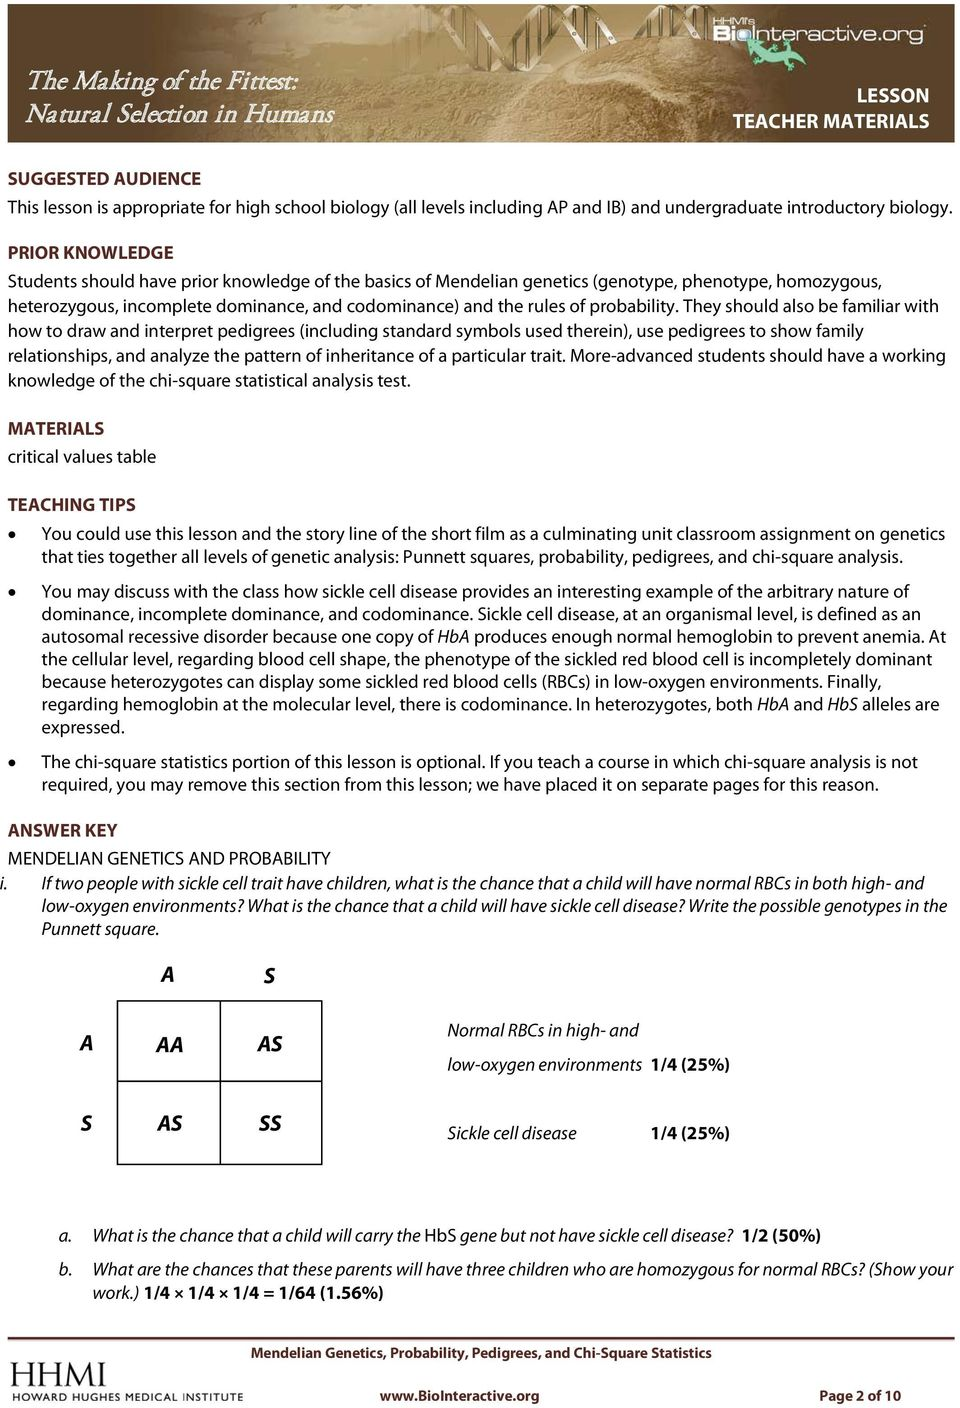 worksheet Genetics And Probability Worksheet the making of fittest natural selection in humans pdf probability